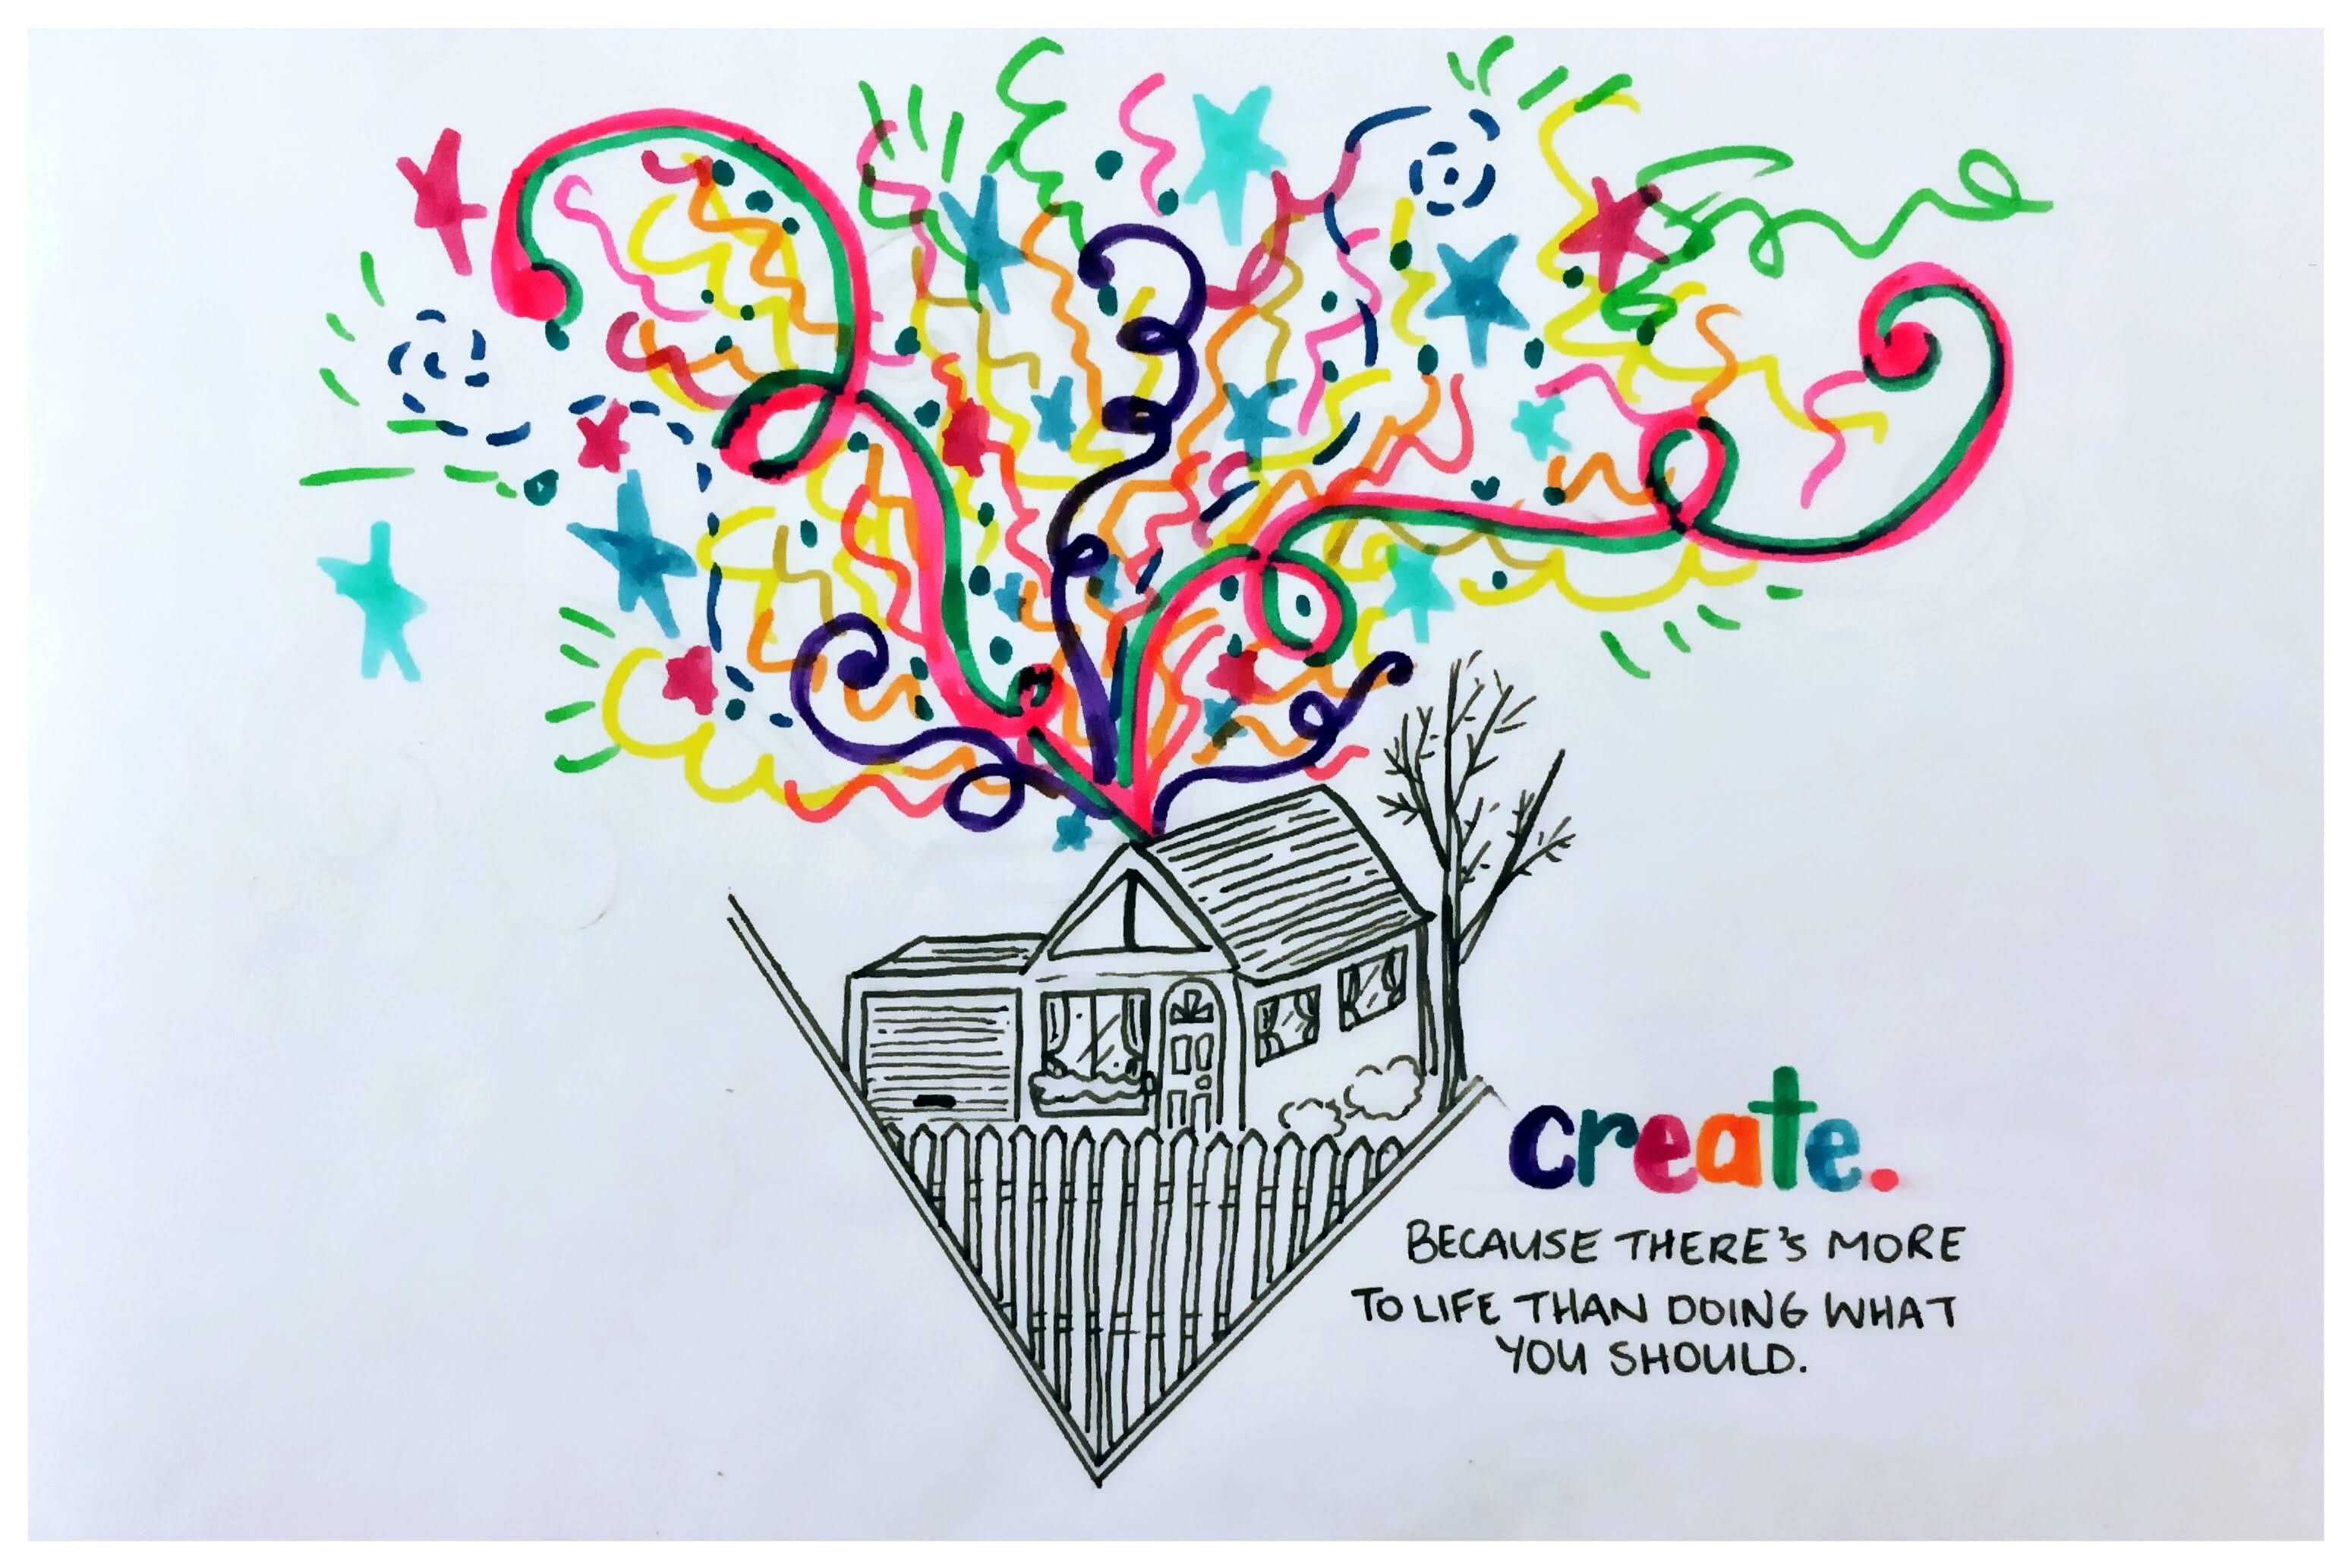 Create. Because there's more to life than doing what you should. This picture has a black and white 'American Dream' house with white picket fence. Bursting out of it is colourful swirls and stars and dots like fireworks.